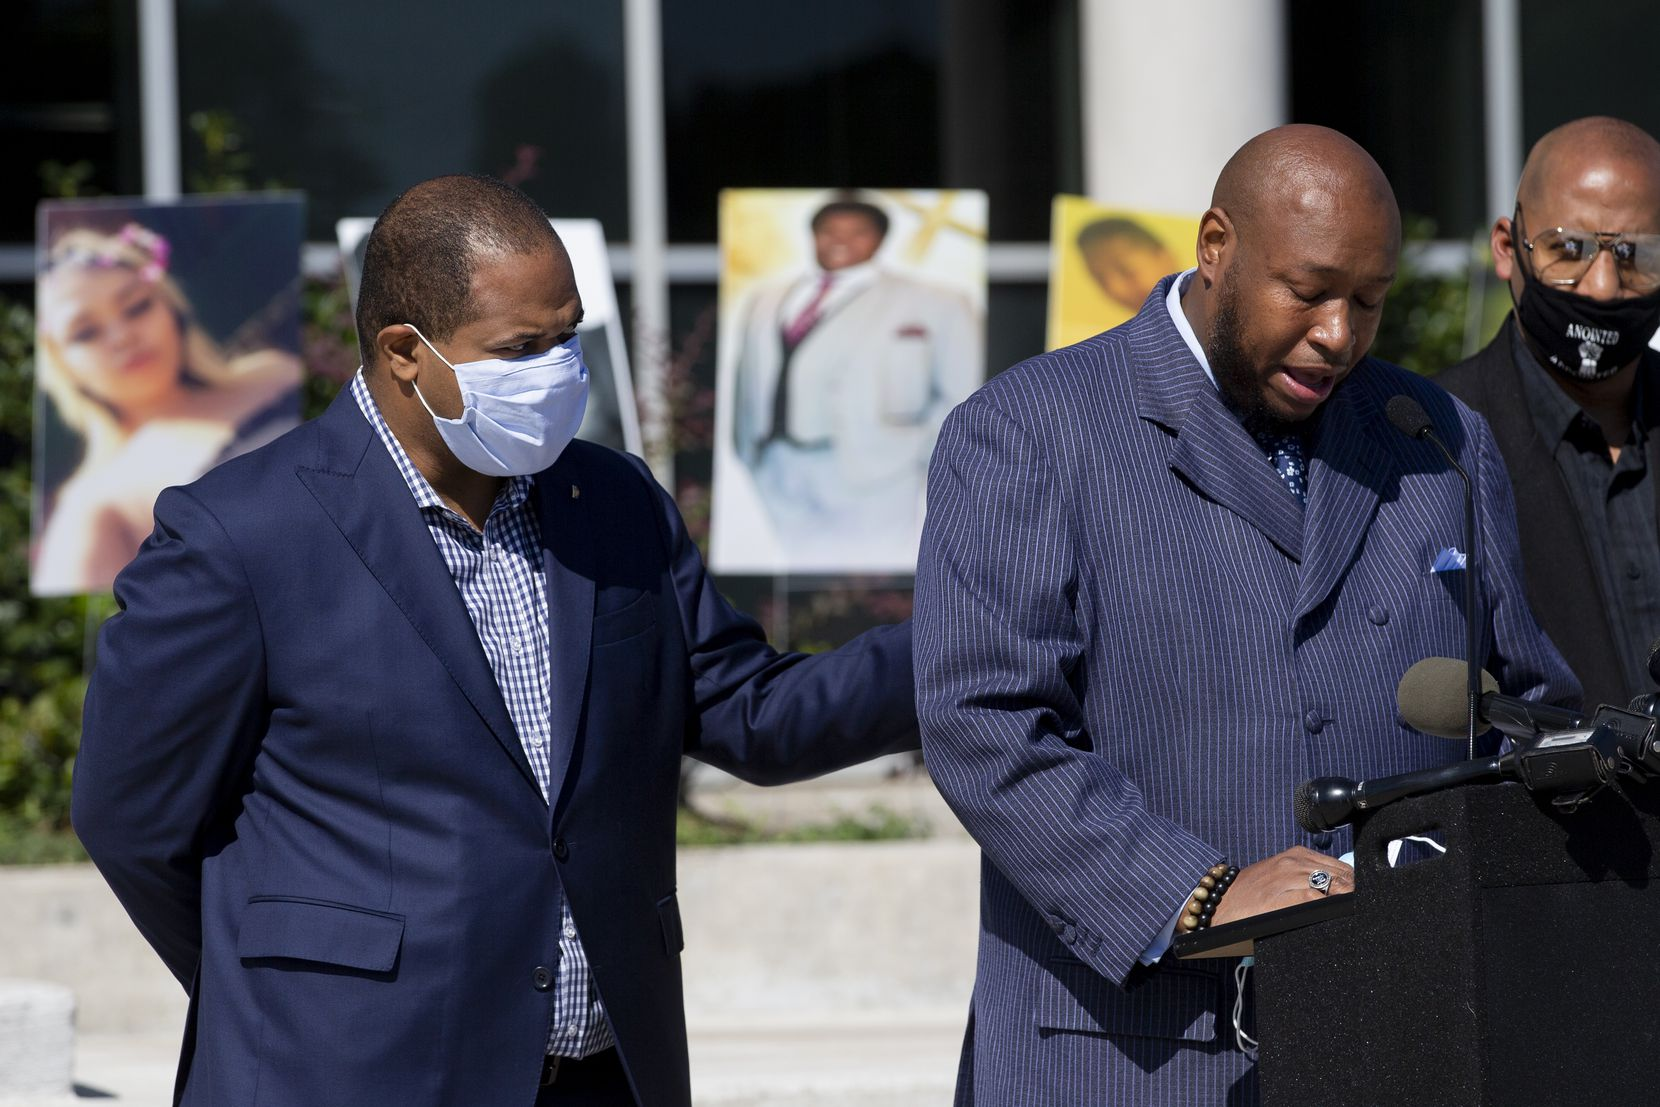 Mayor Eric Johnson (left) consoled Dallas ISD trustee Maxie Johnson as he became emotional speaking about his son's death from gun violence during a news conference about funding for public safety initiatives at South Oak Cliff High School in Dallas in October. Photos of students lost to gun violence were placed outside the school.